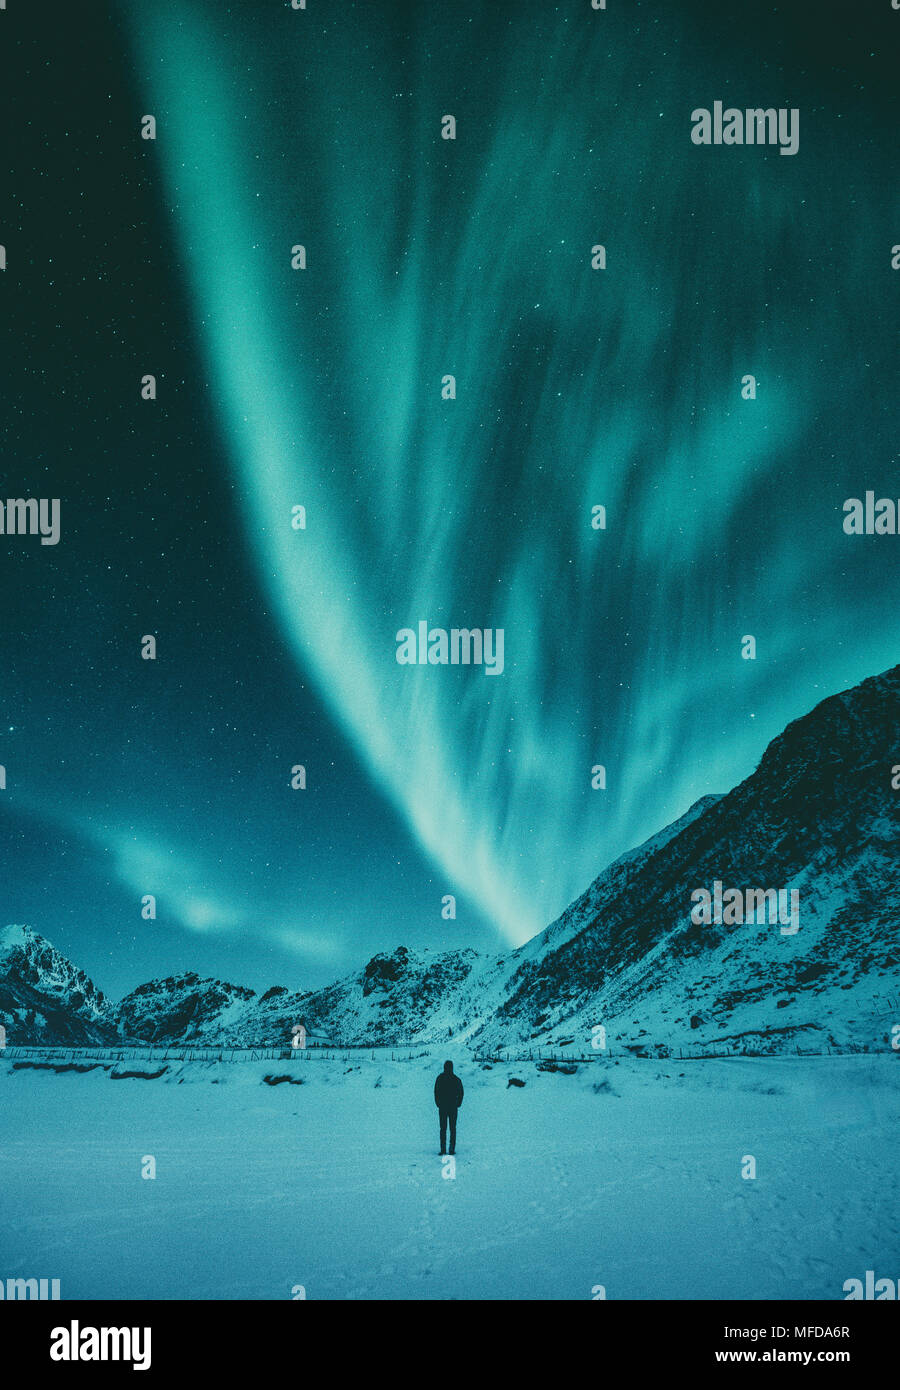 Young man is standing on a remote beach watching the Northern Lights dance above mountains in winter, Lofoten Islands archipelago, Norway, Scandinavia Stock Photo